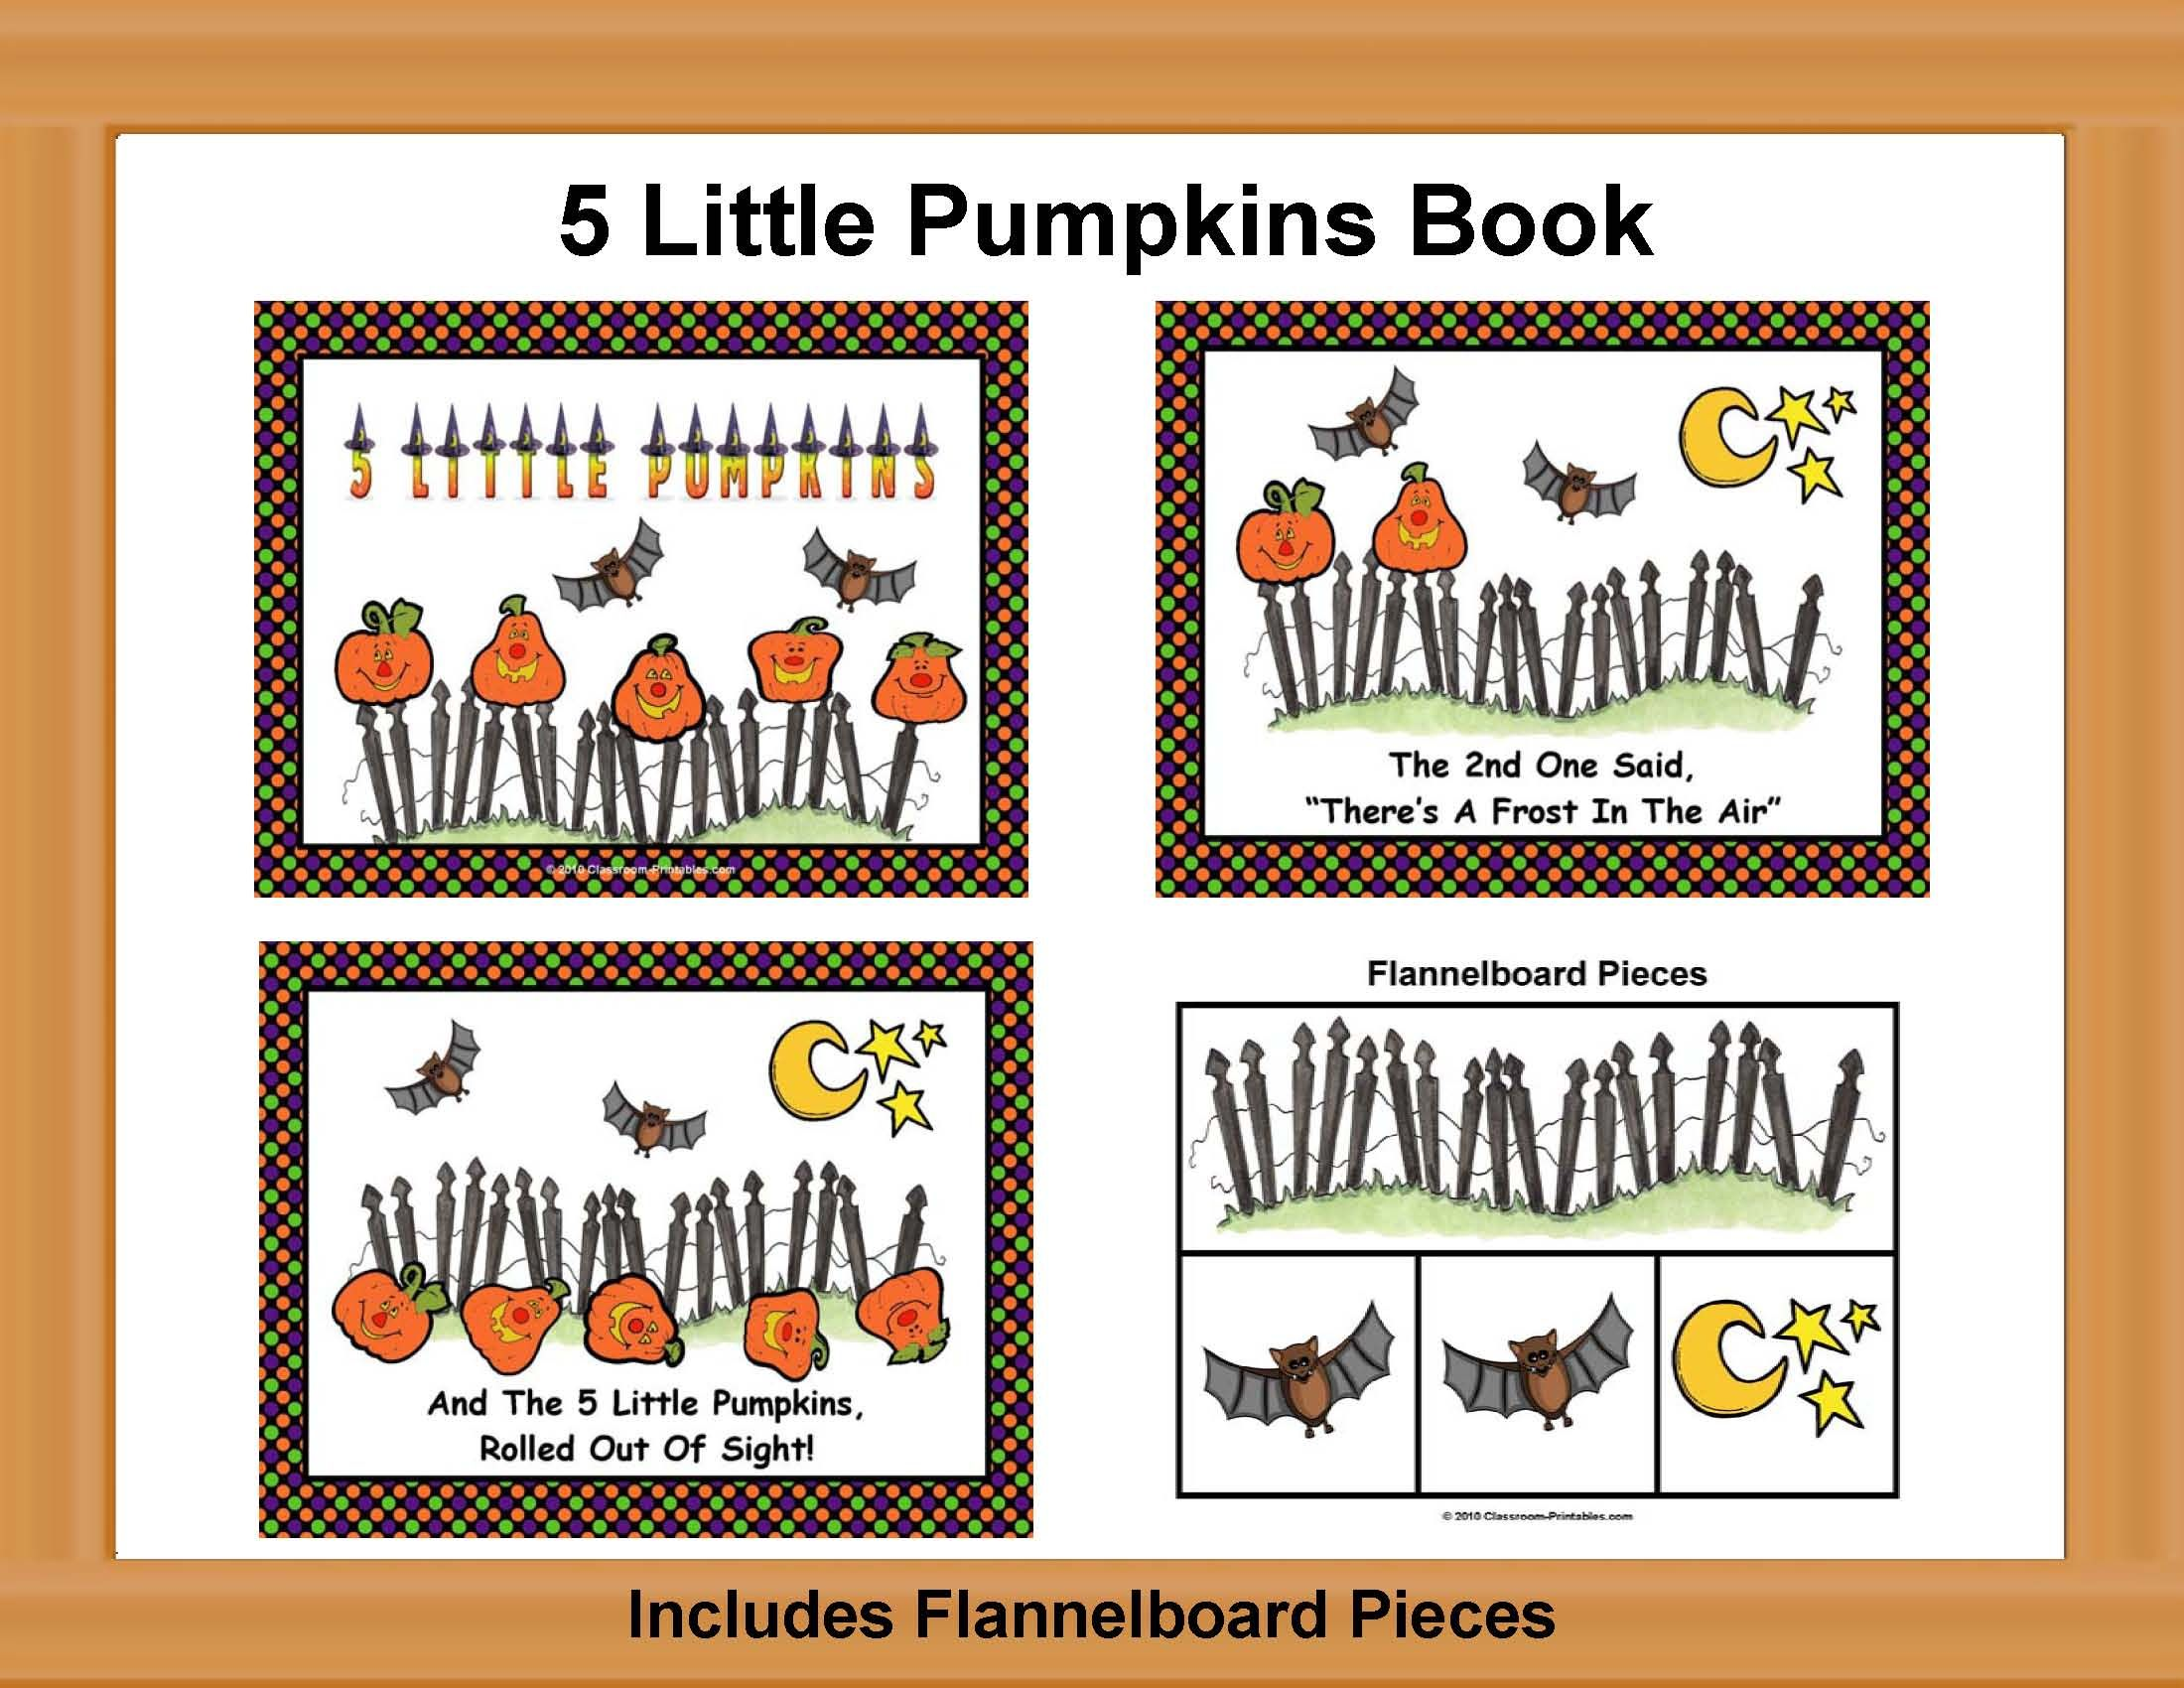 5 Little Pumpkins Book With Flannelboard Pieces